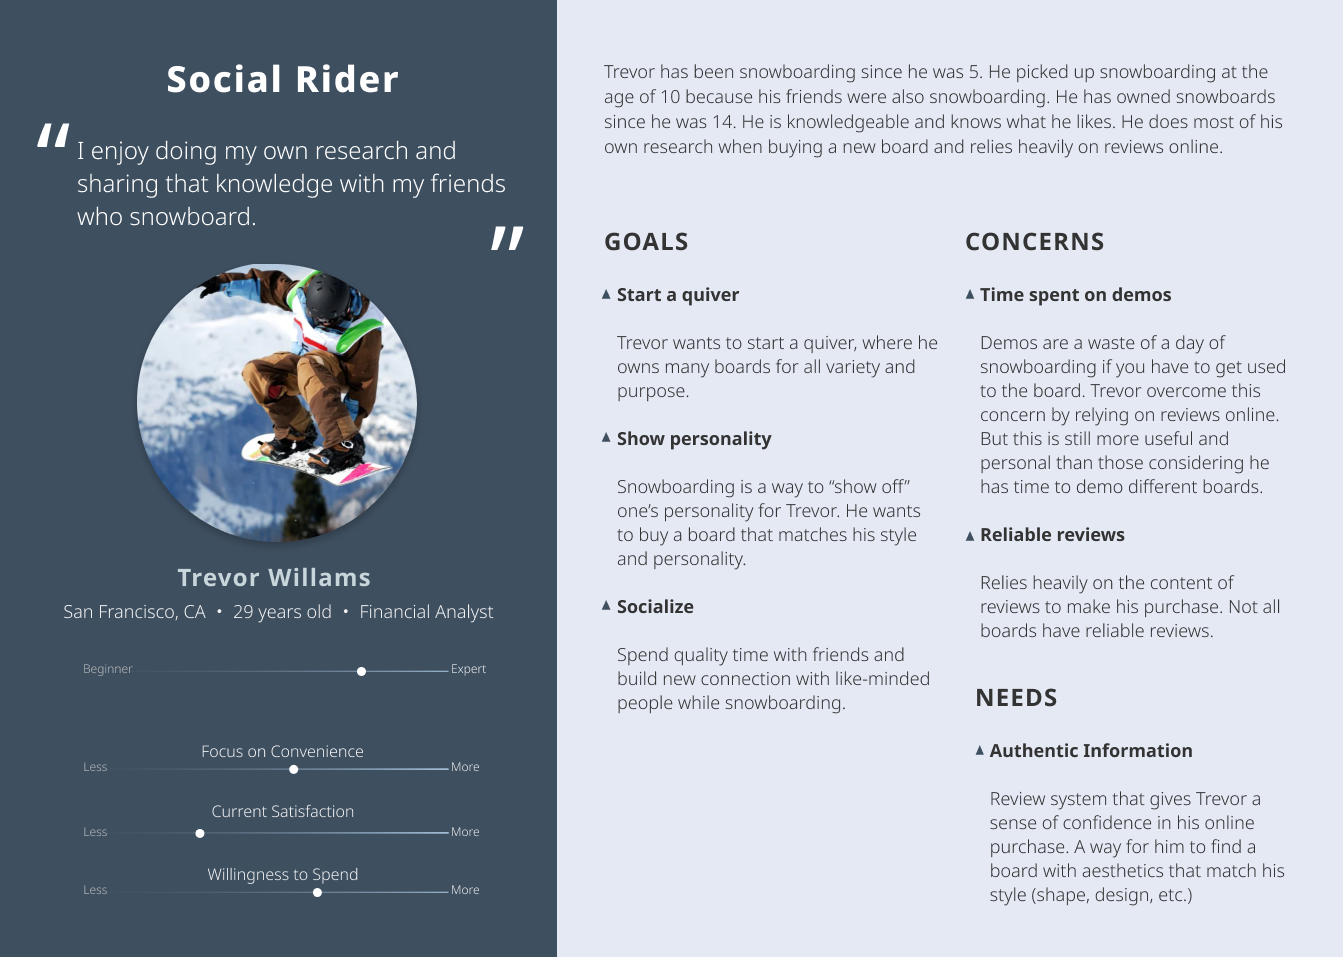 Gilson Snow persona describing the Social Rider persona